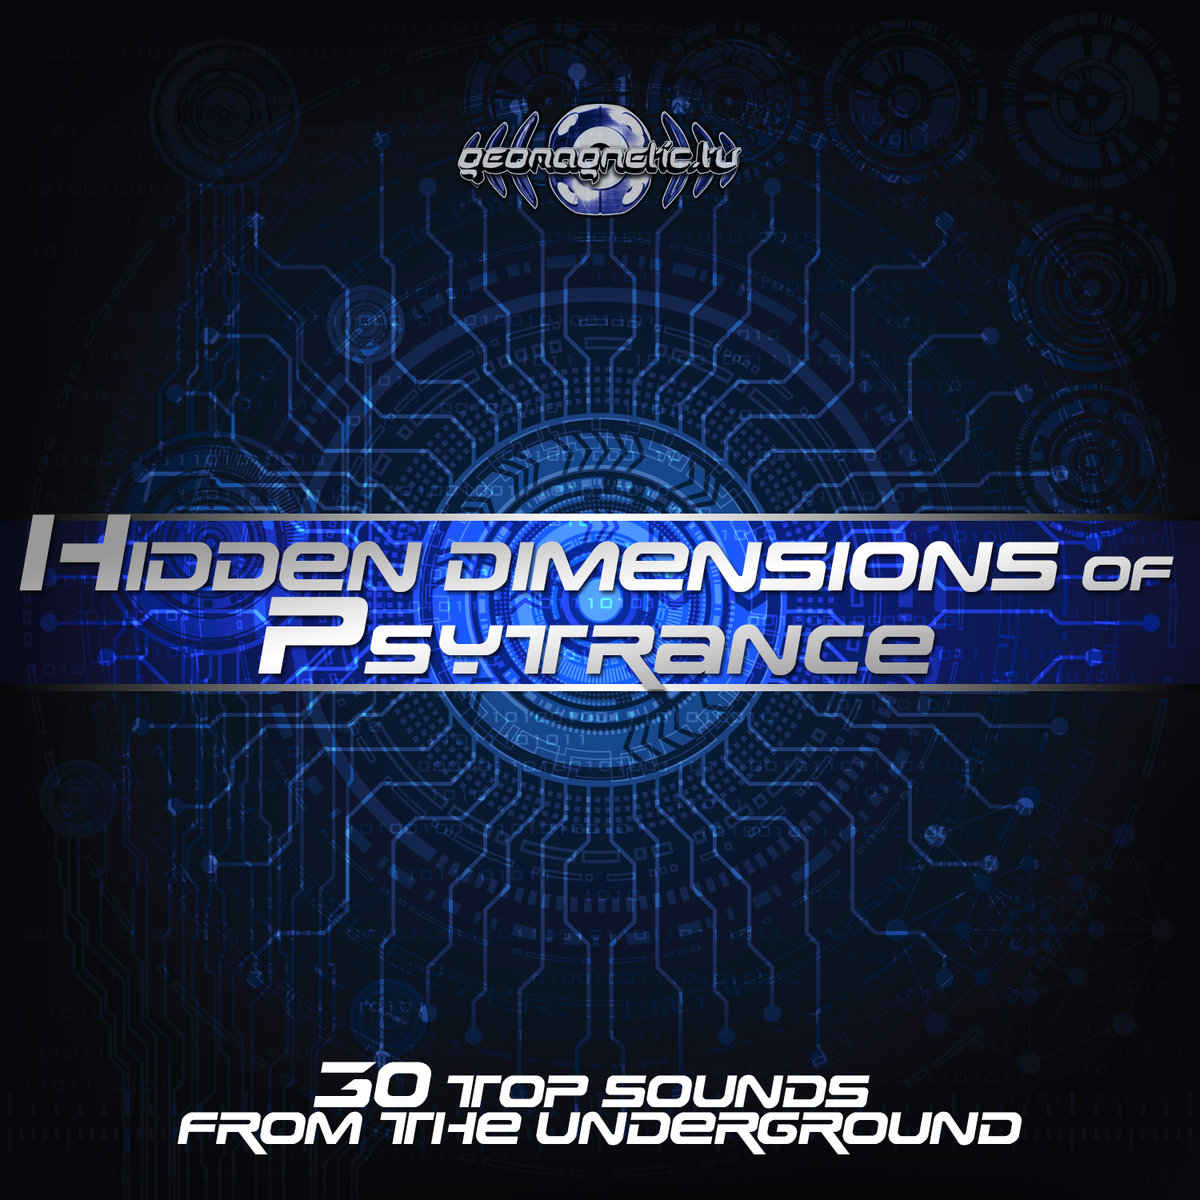 Argon Sphere & Cosmonautica - Outer Space (Mucora Remix) @ 'Various Artists - Hidden Dimensions of Psytrance (30 Top Sounds From The Underground)' album (electronic, goa)